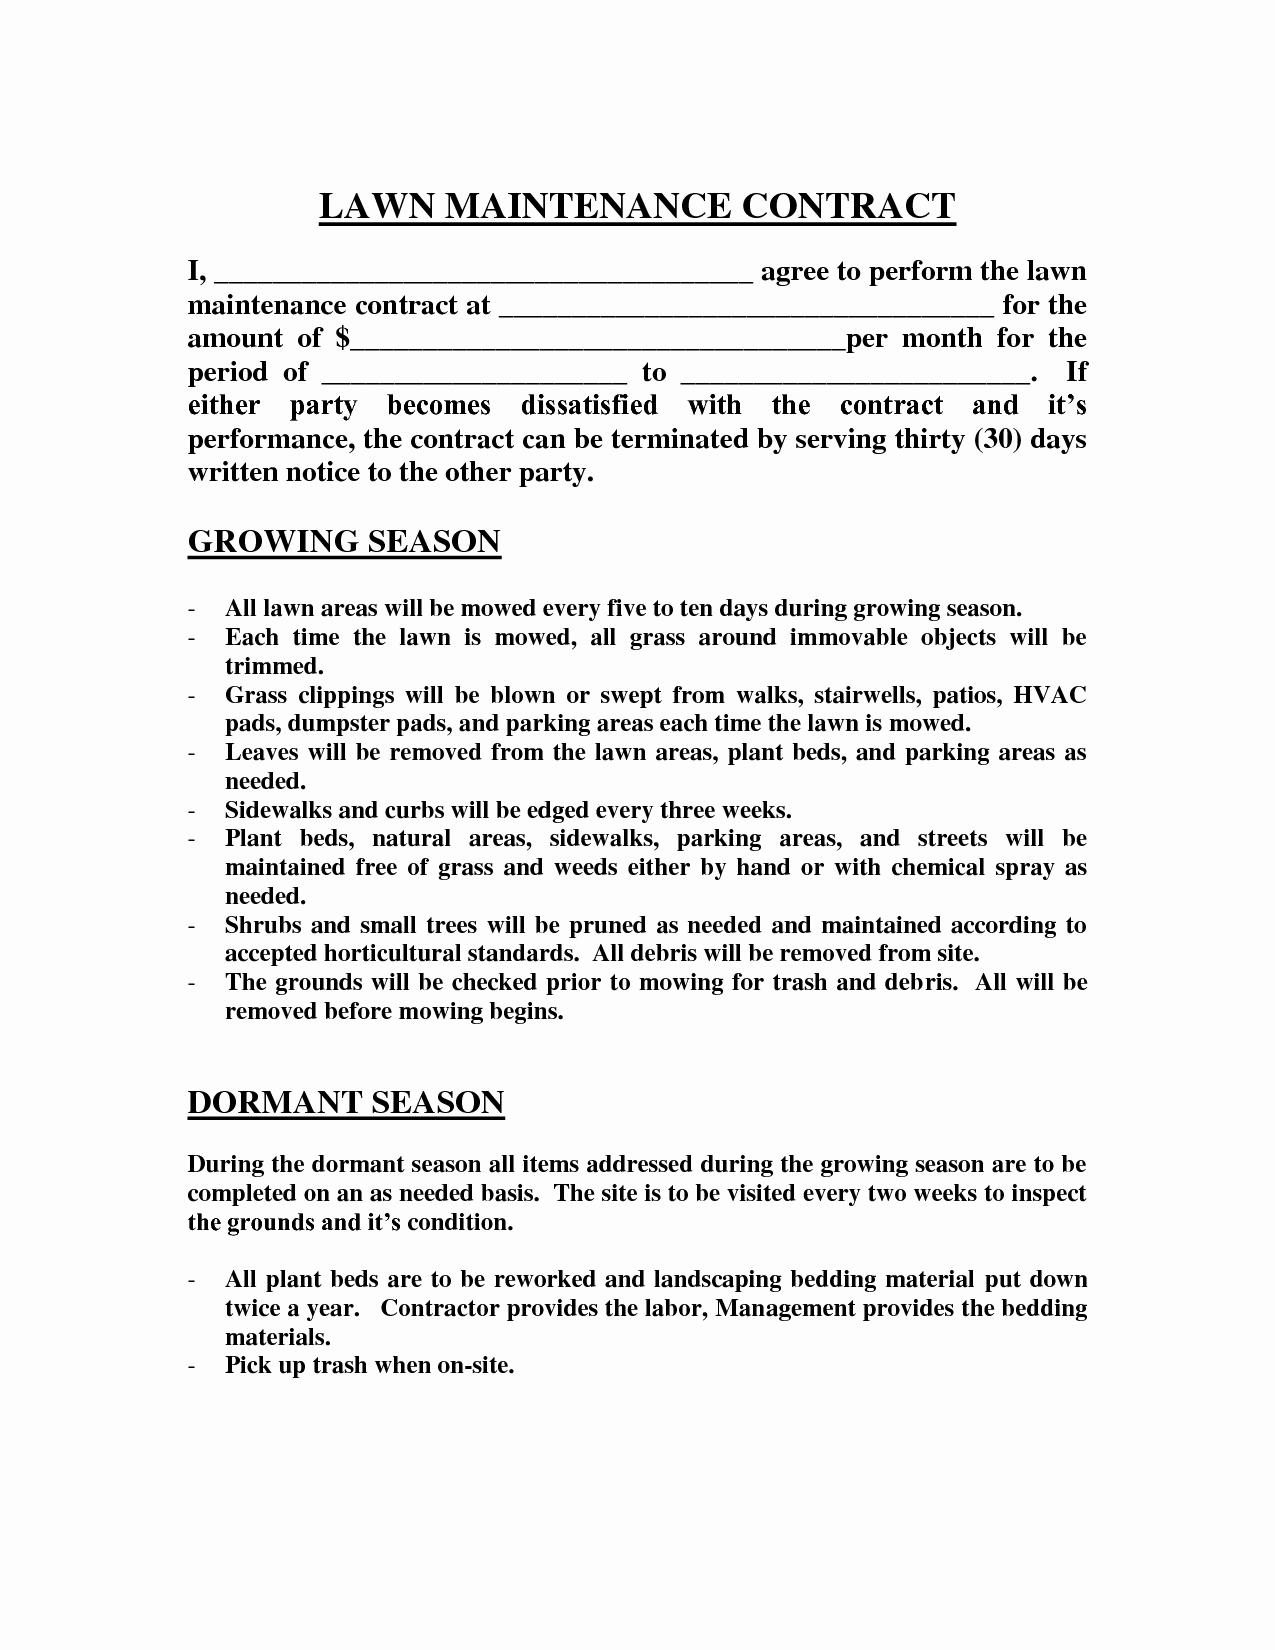 Lawn Service Contract Template Lovely Lawn Maintenance Contract Images Lawn Maintenance